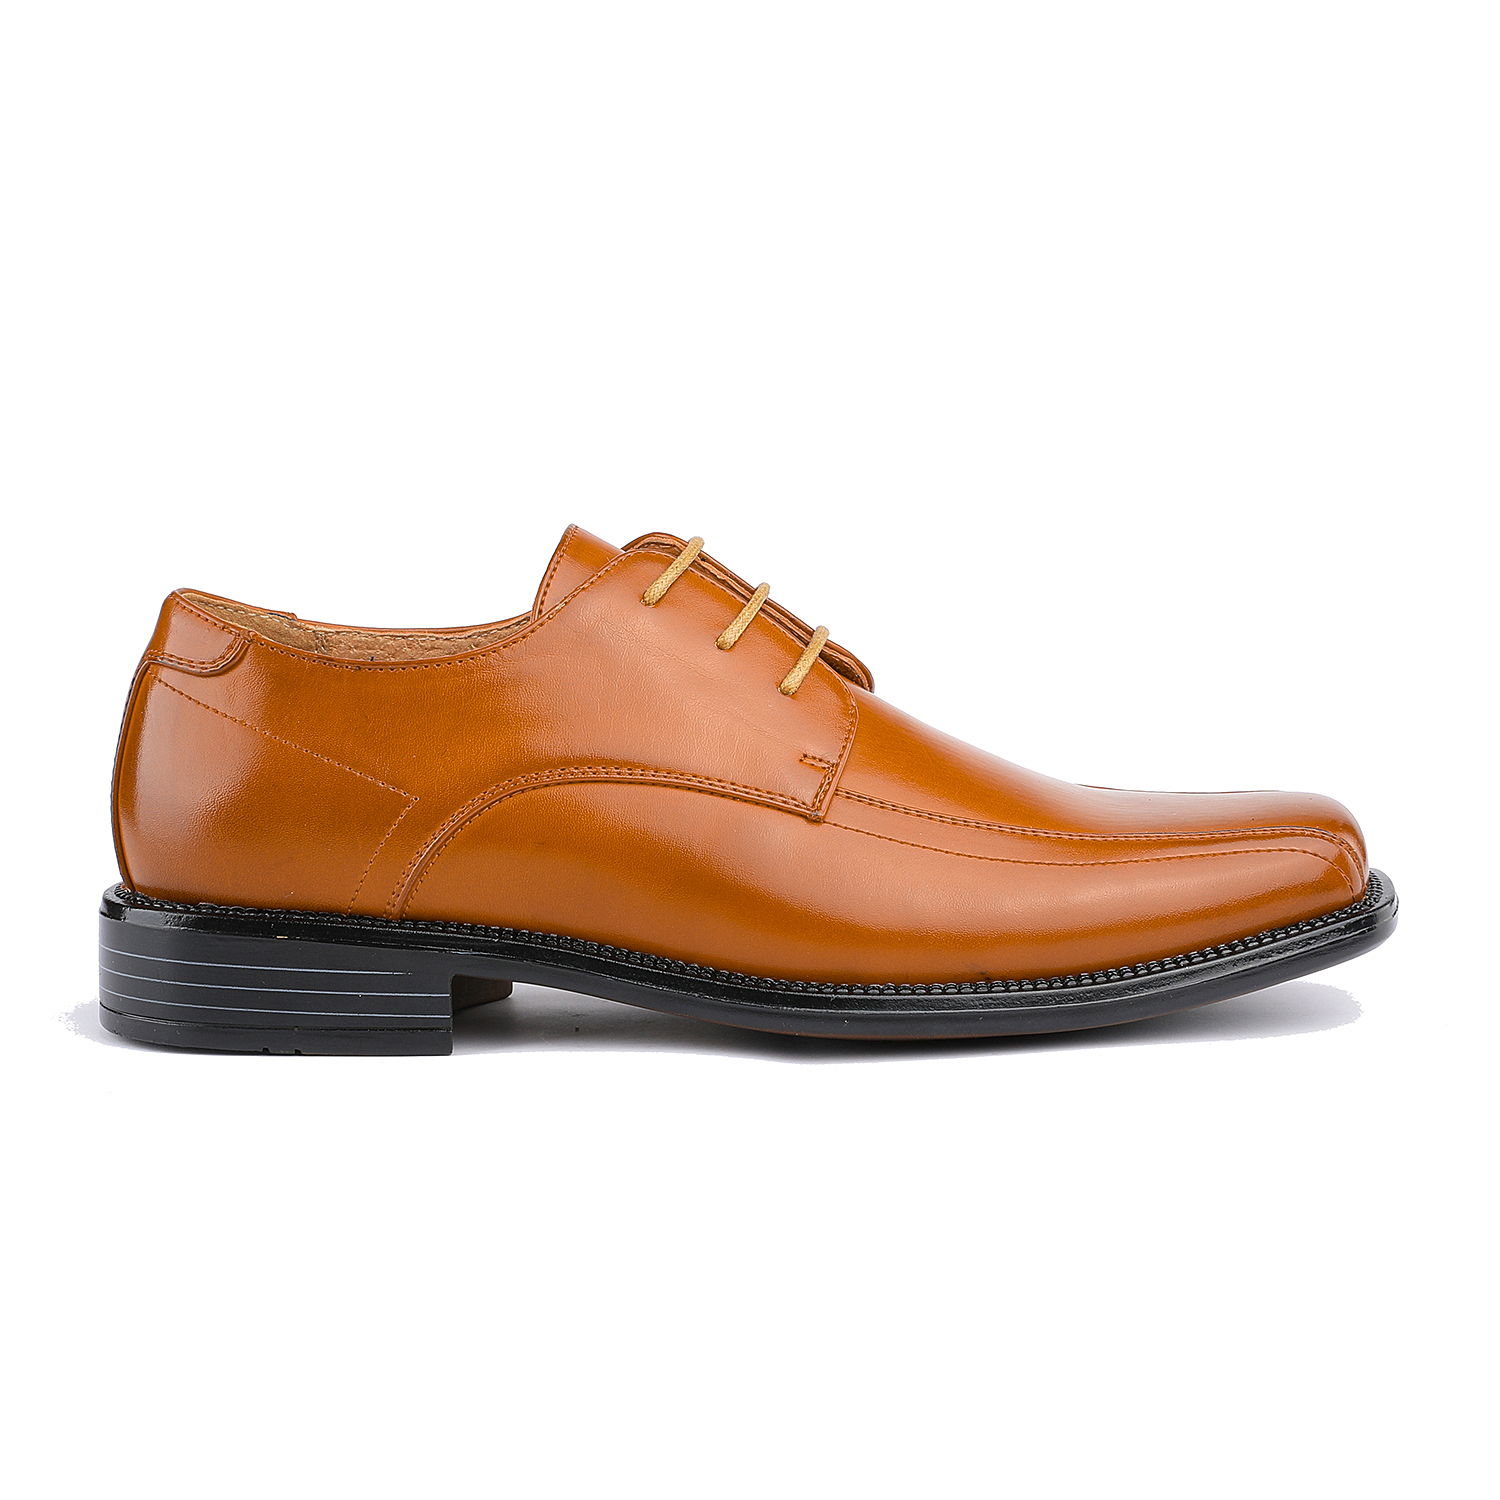 BRUNO-MARC-Men-STATE-Formal-Square-Toe-Leather-Lined-Slip-On-Dress-Loafers-Shoes thumbnail 26